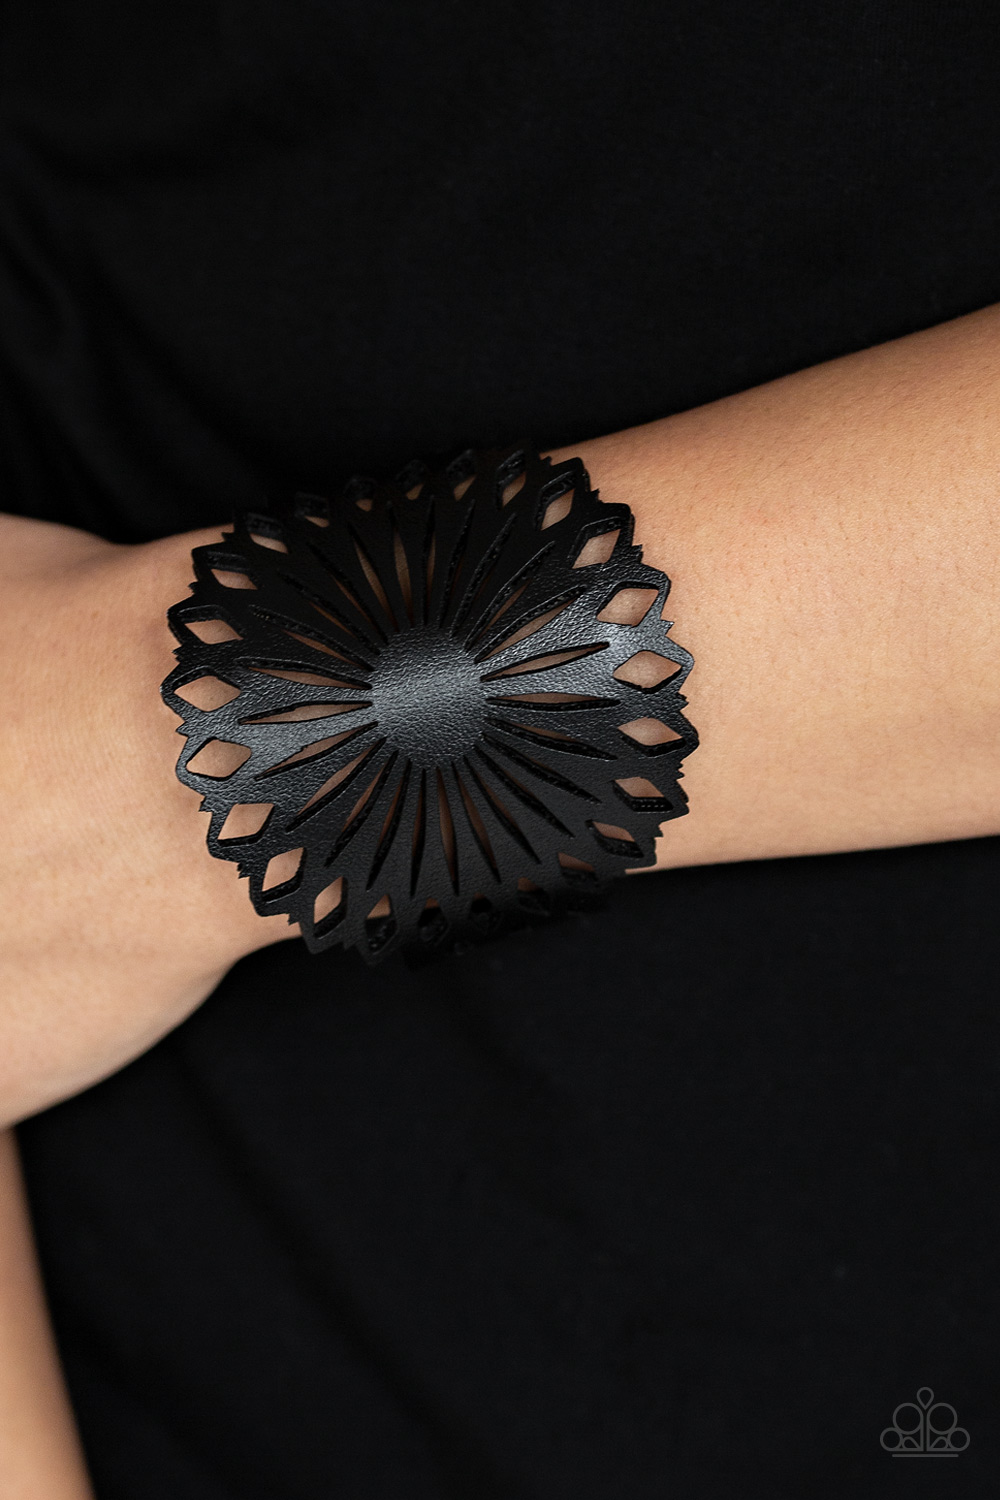 Black Leather Floral Bracelet from Paparazzi $5 www.my-bling.com